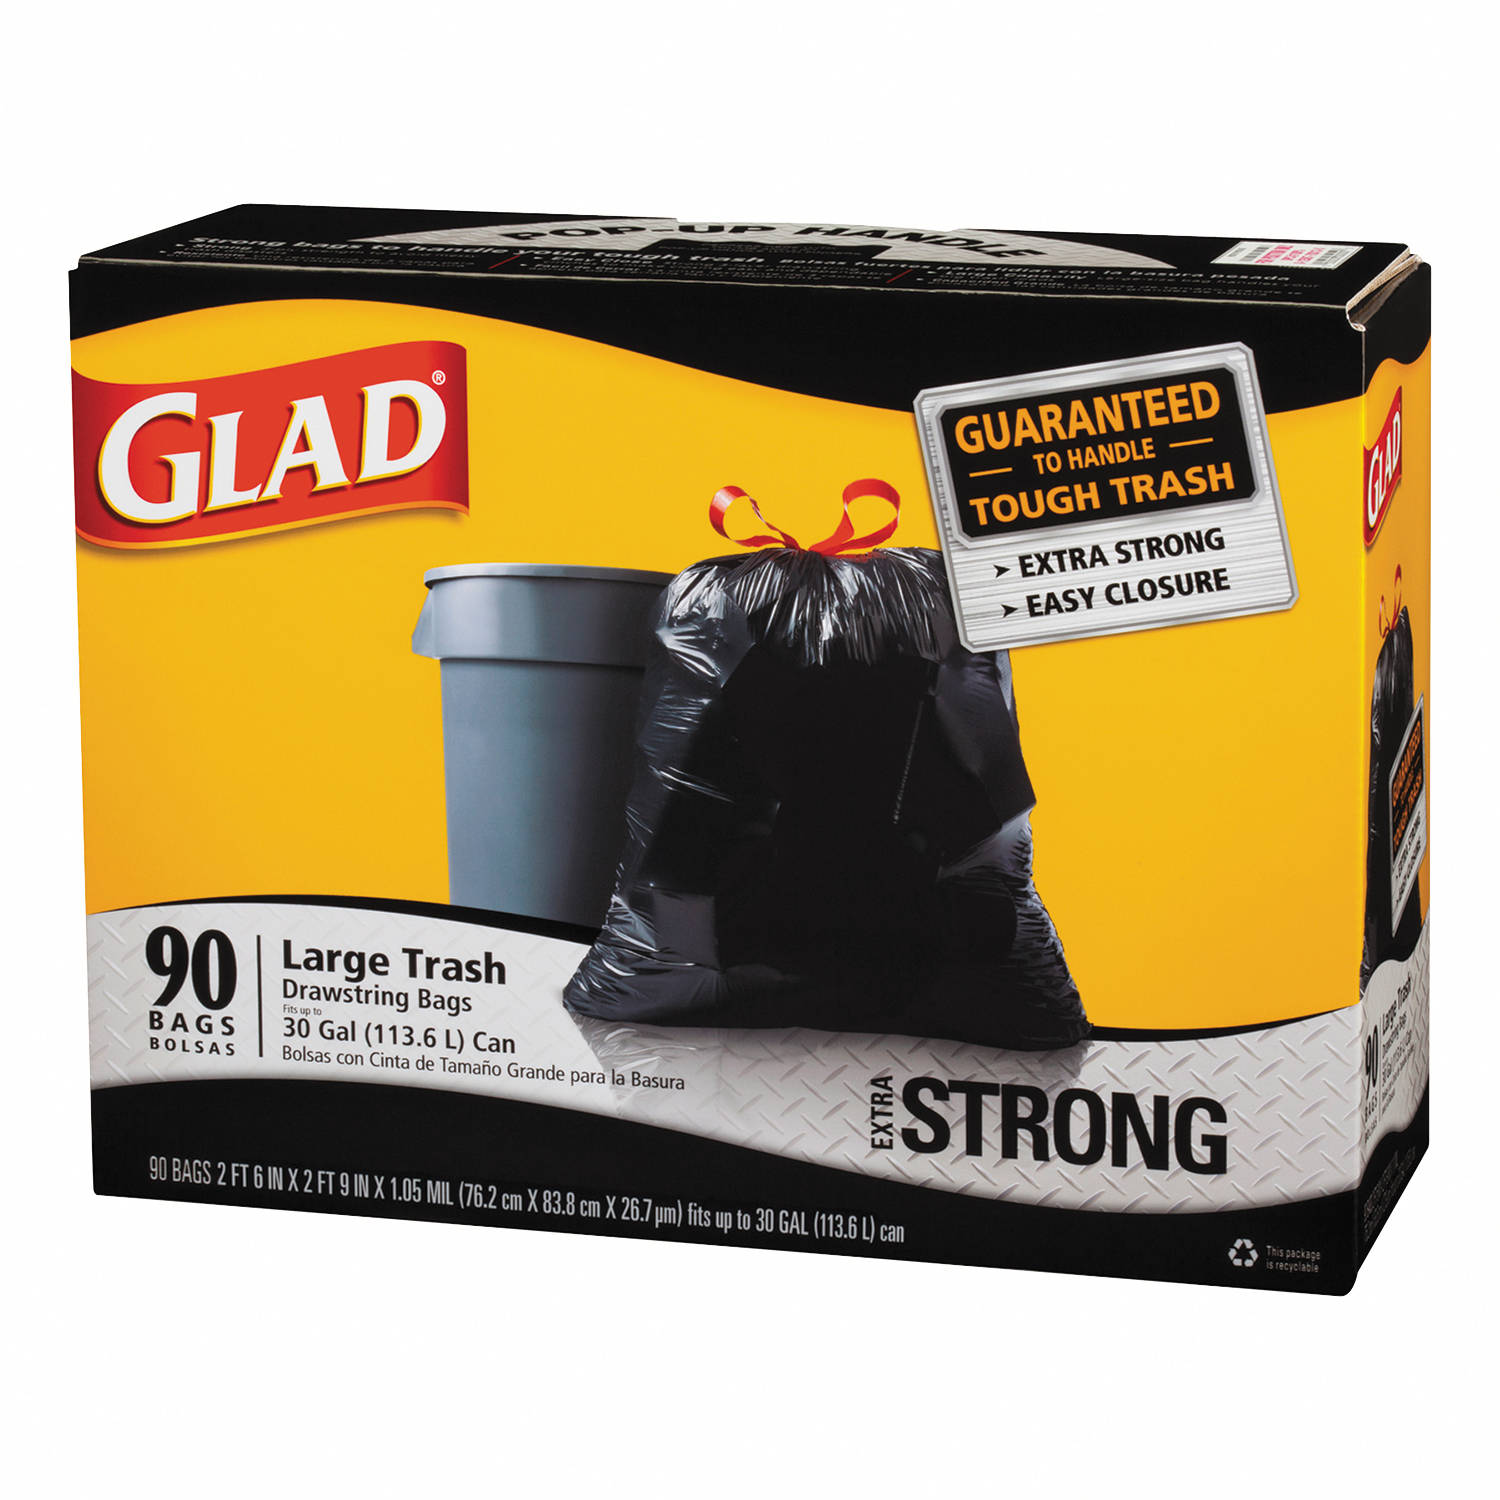 Glad Extra Strong Black Drawstring Large 30 gal. Trash Bags, 90 count